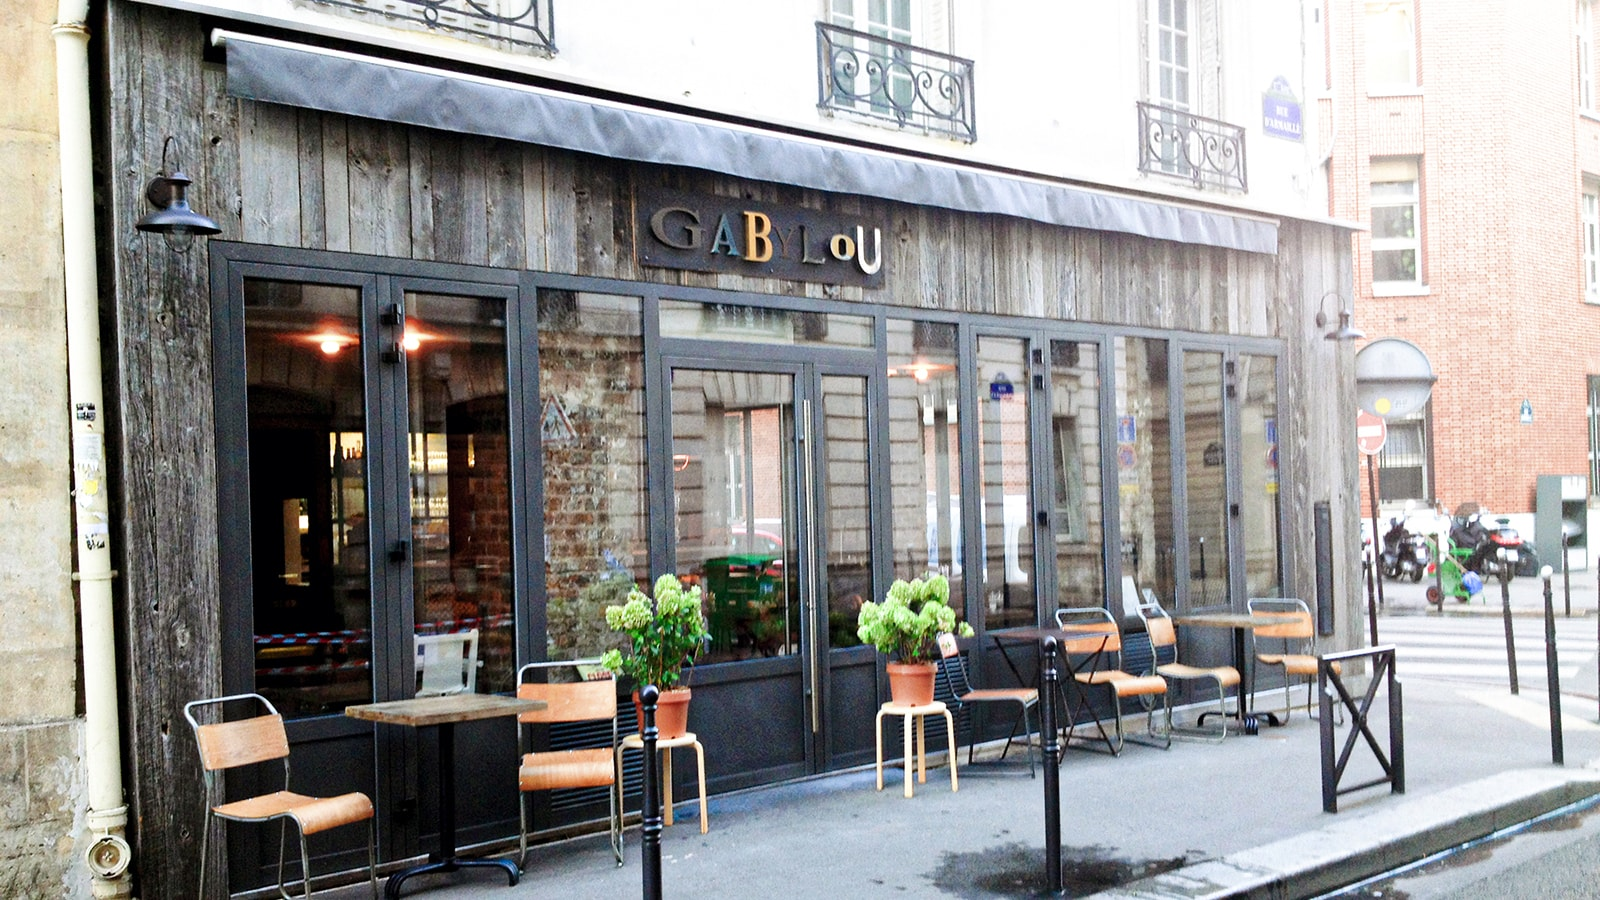 EFI Design Restaurant Le Gabylou Paris 1271